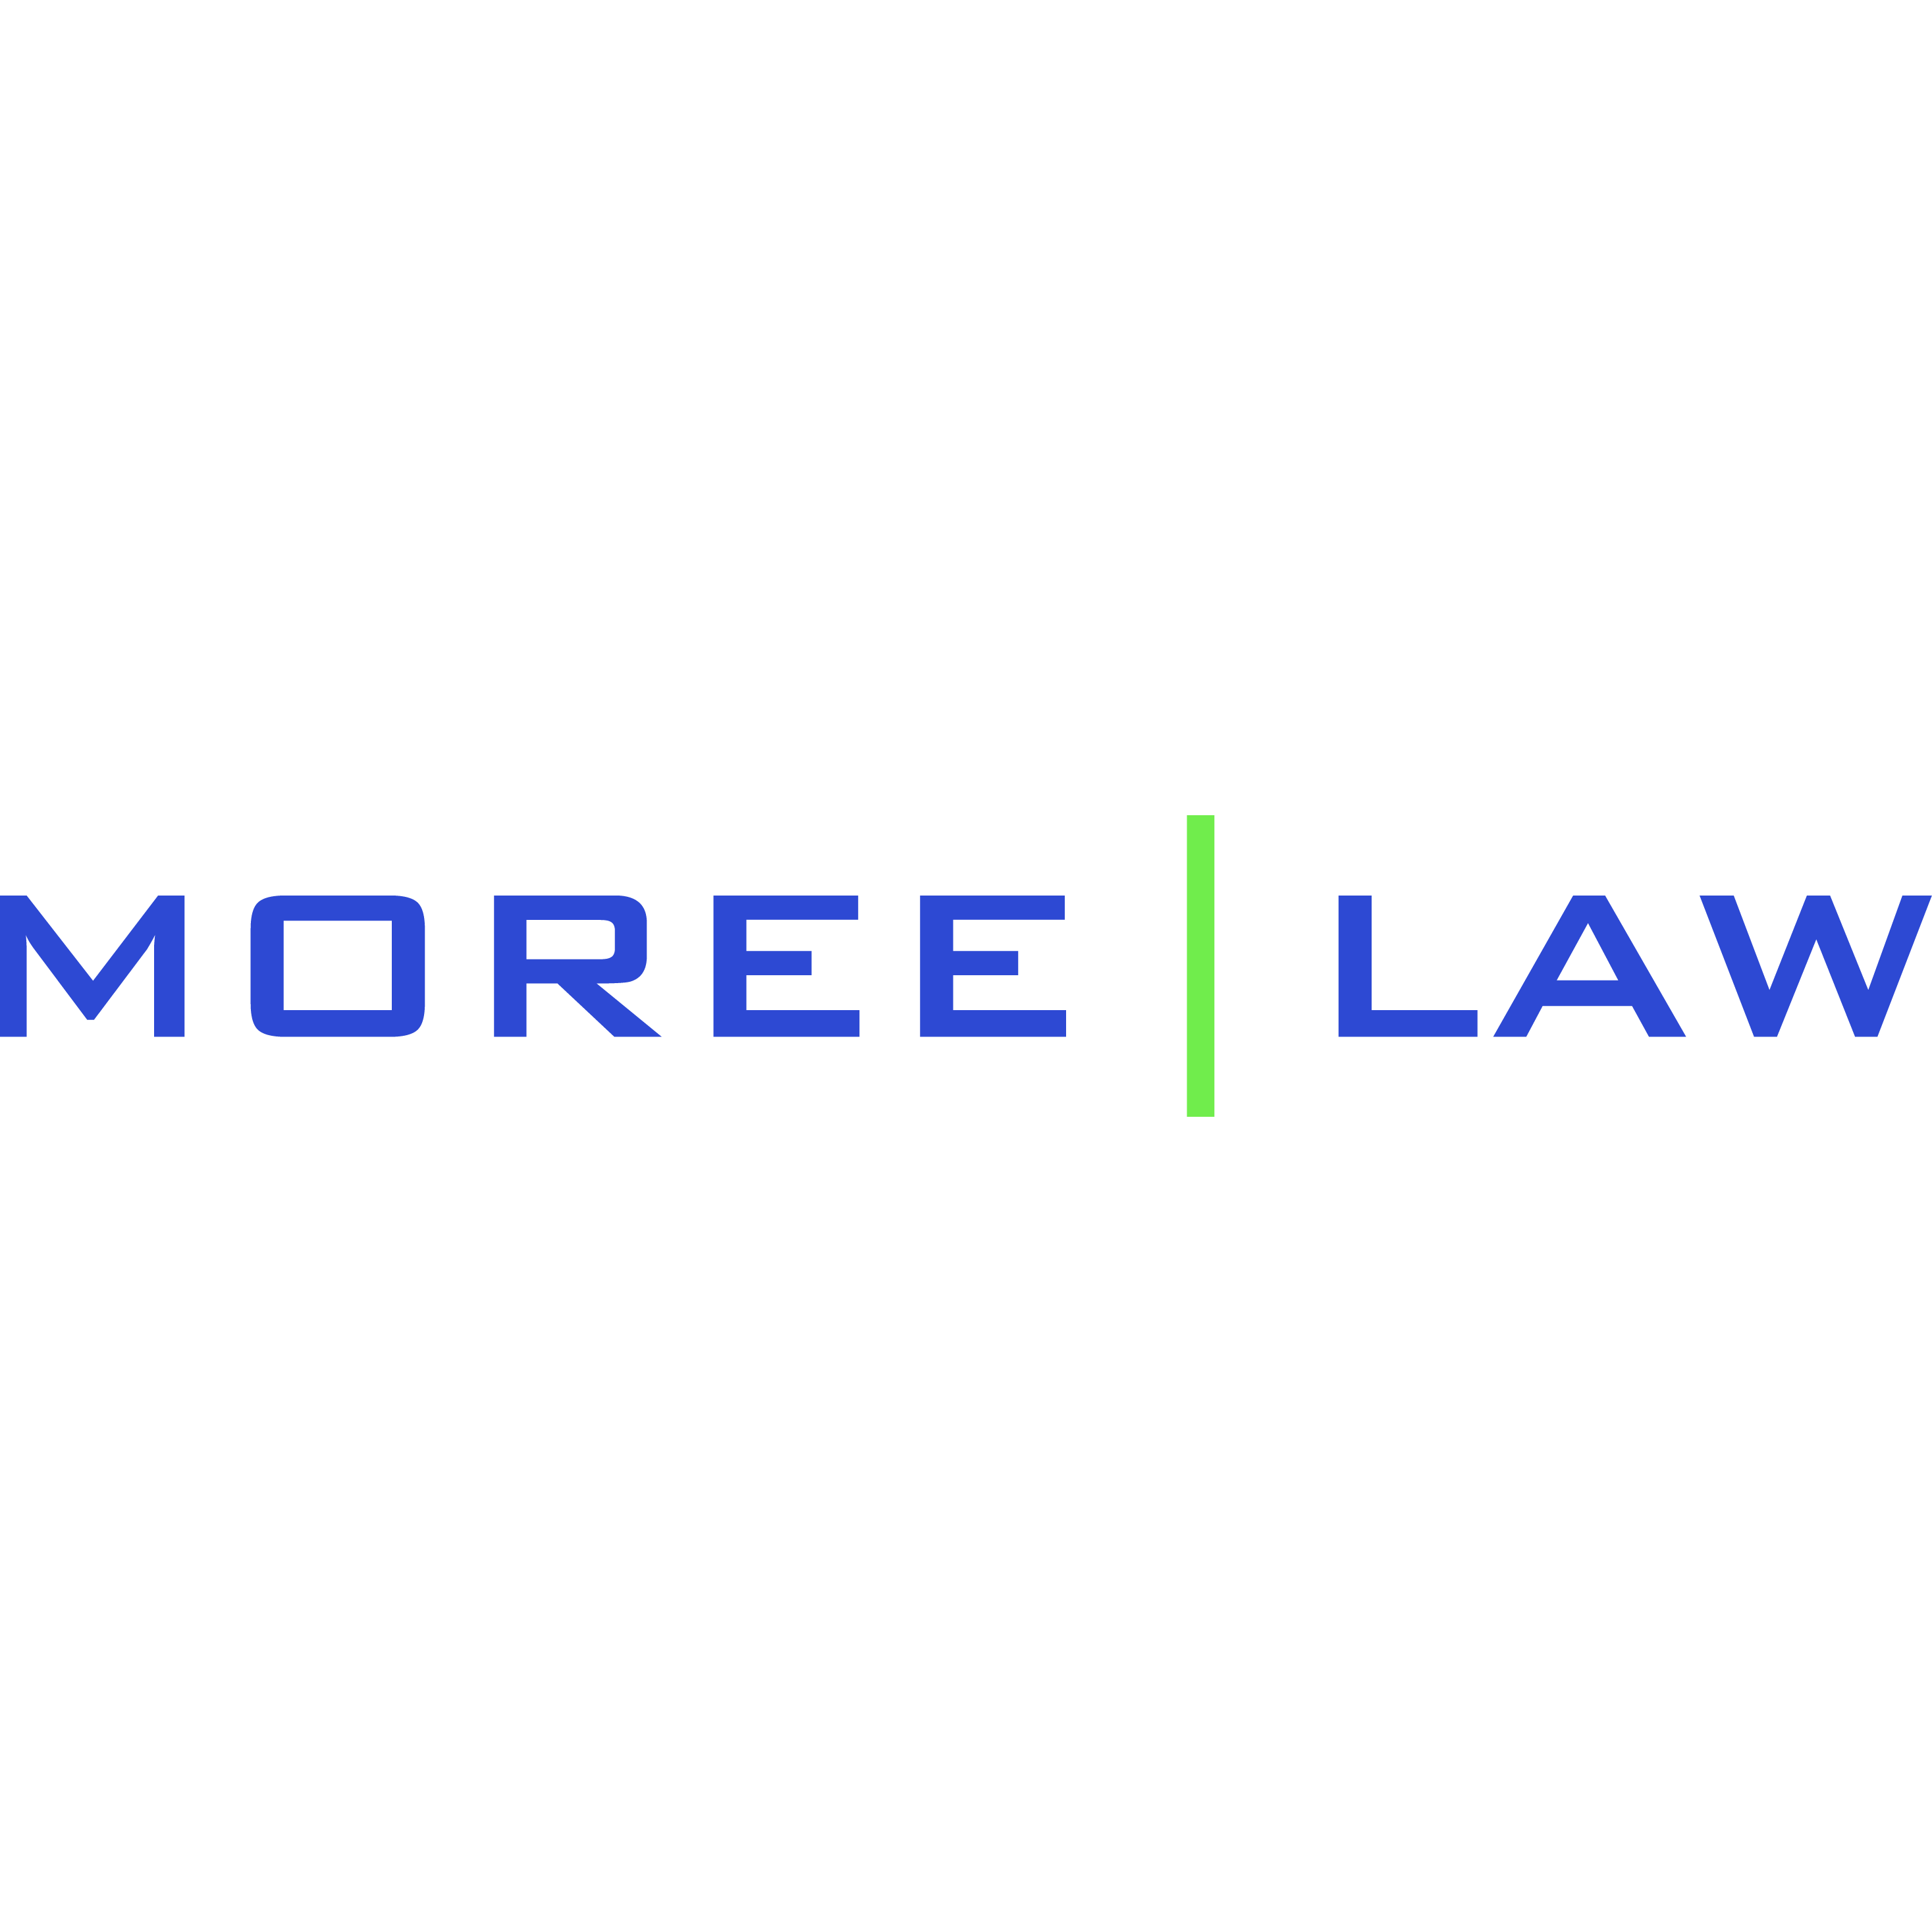 Moree Law